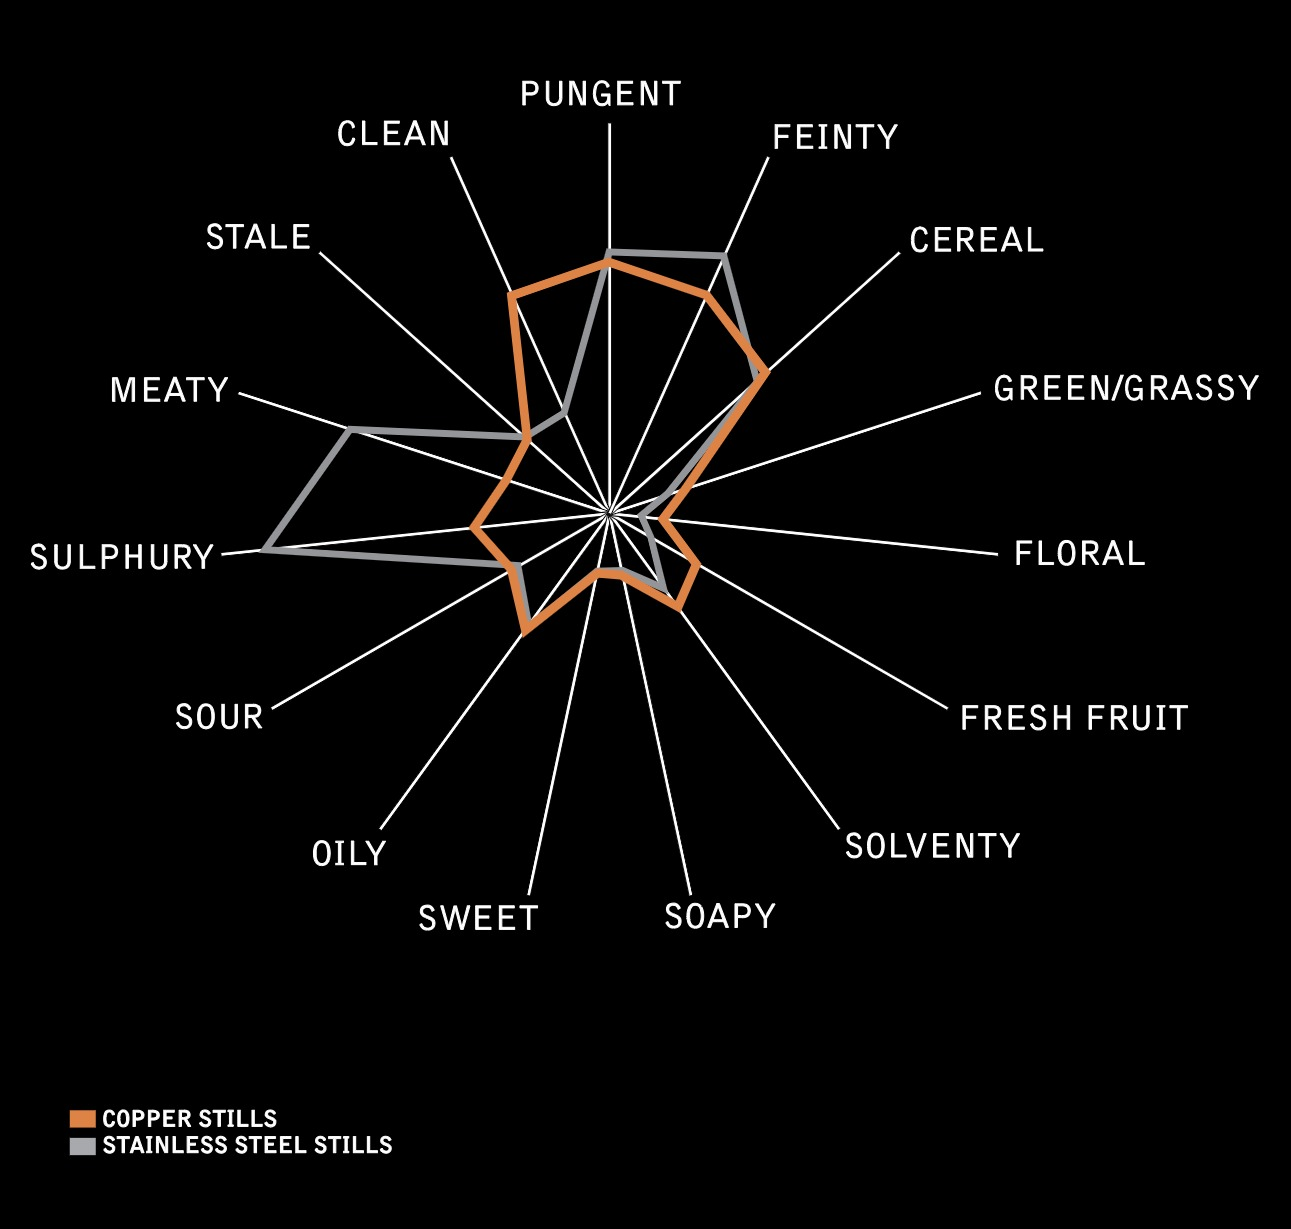 a plot of how copper and stainless steel both effect the flavour of whisky